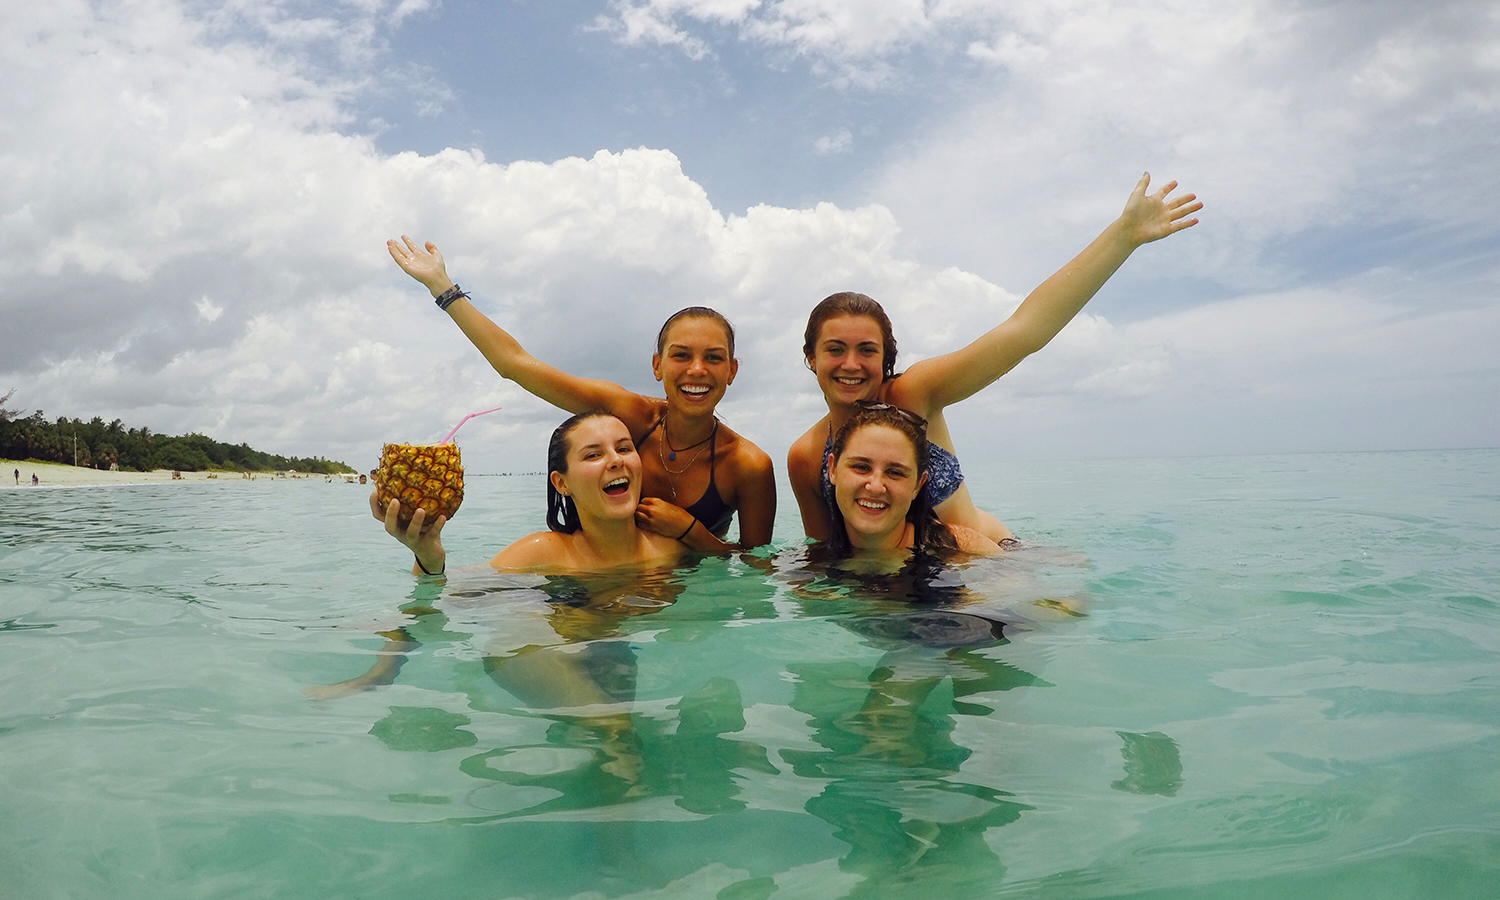 While enjoying a day at Varadero Beach, Colleen Frank '19, Cecelia Foley '18, Sophie MacCracken '18, and Olivia Bennett '20, pose for a picture.